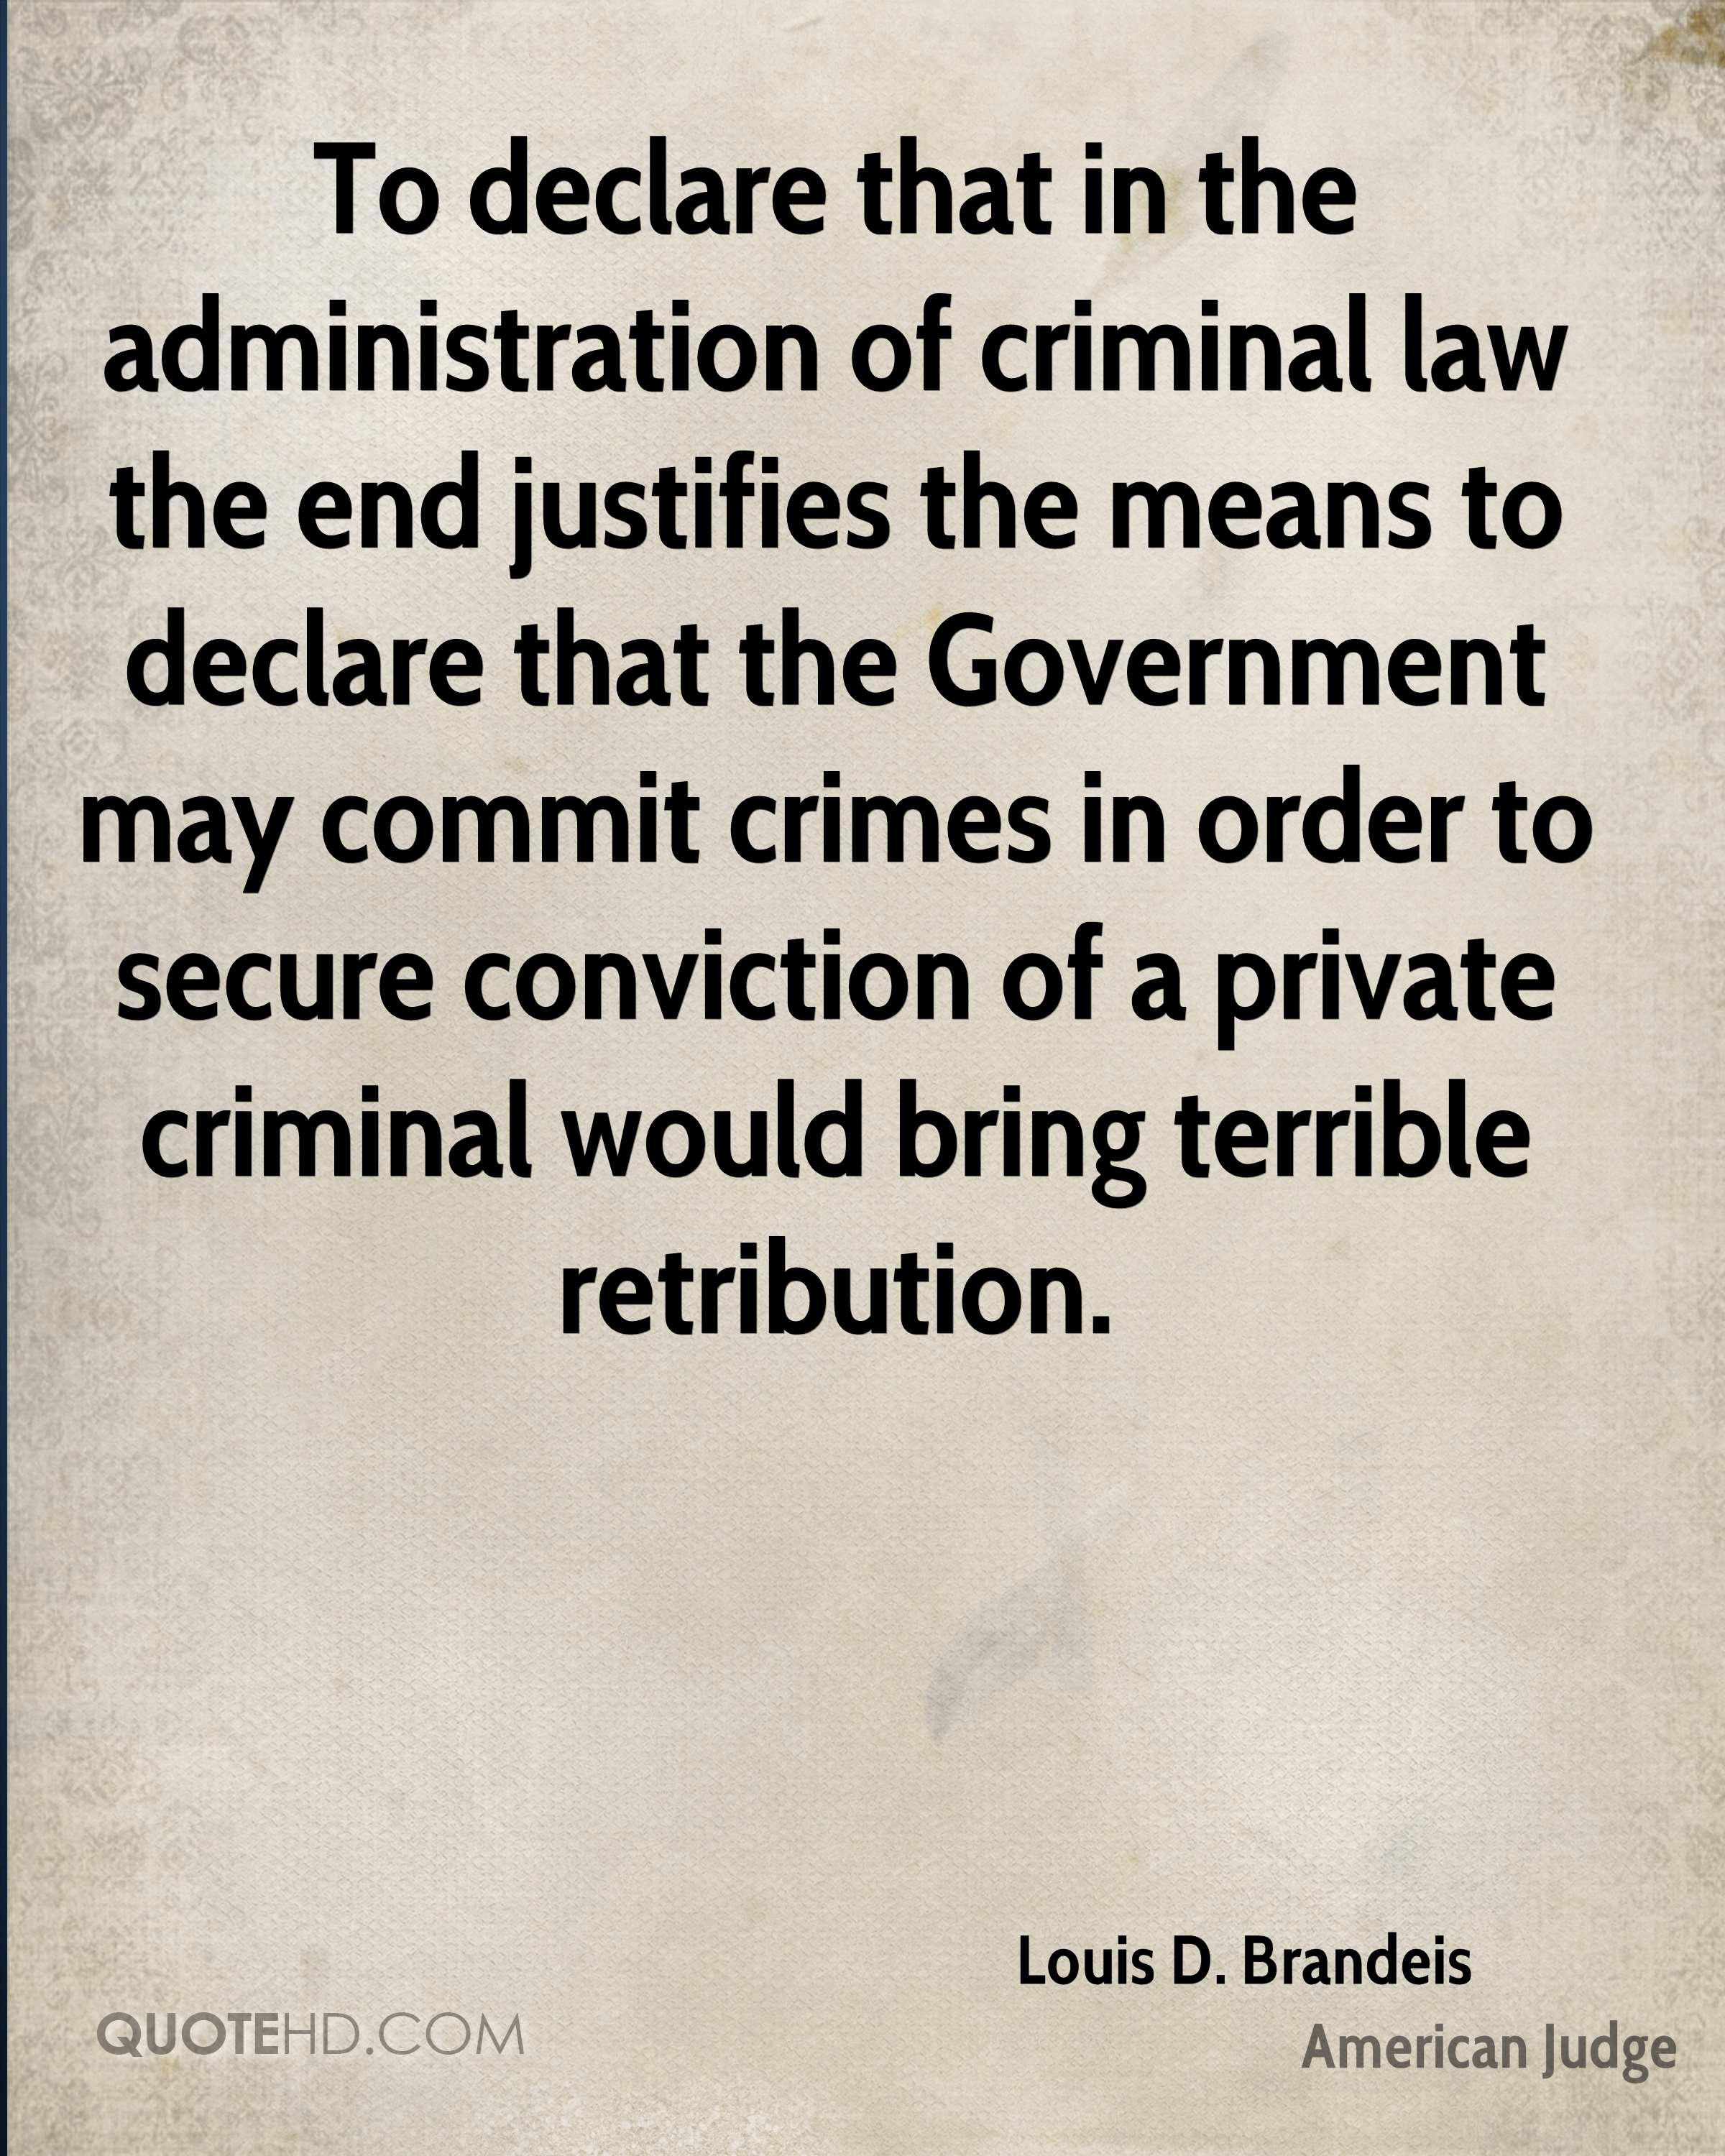 To declare that in the administration of criminal law the end justifies the means to declare that the Government may commit crimes in order to secure conviction of a private criminal would bring terrible retribution.